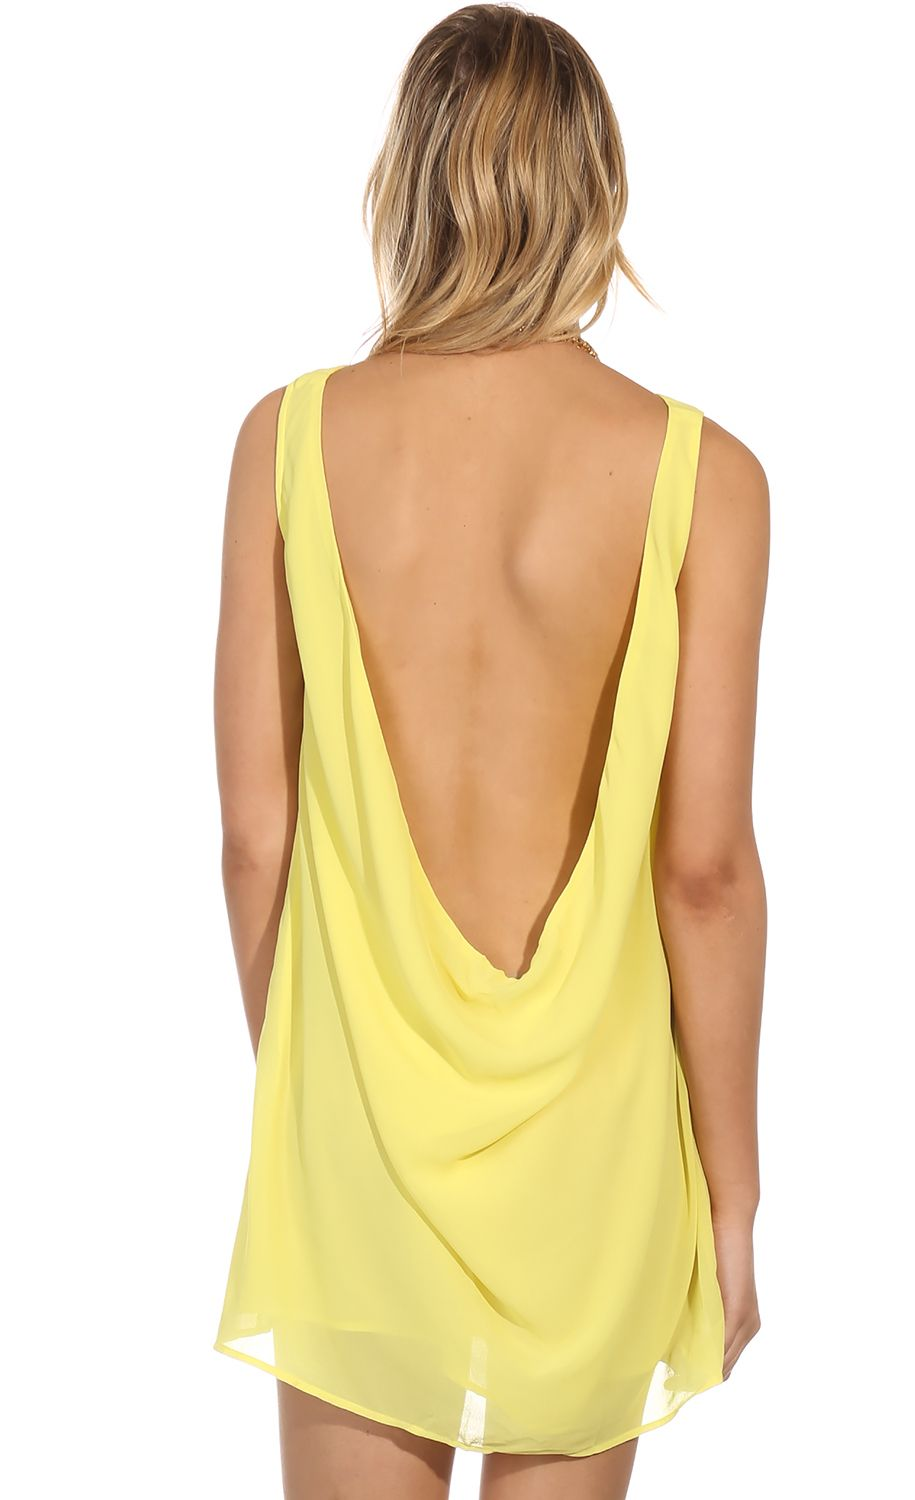 Party dresses > DANCE THE NIGHT AWAY DRESS IN YELLOW